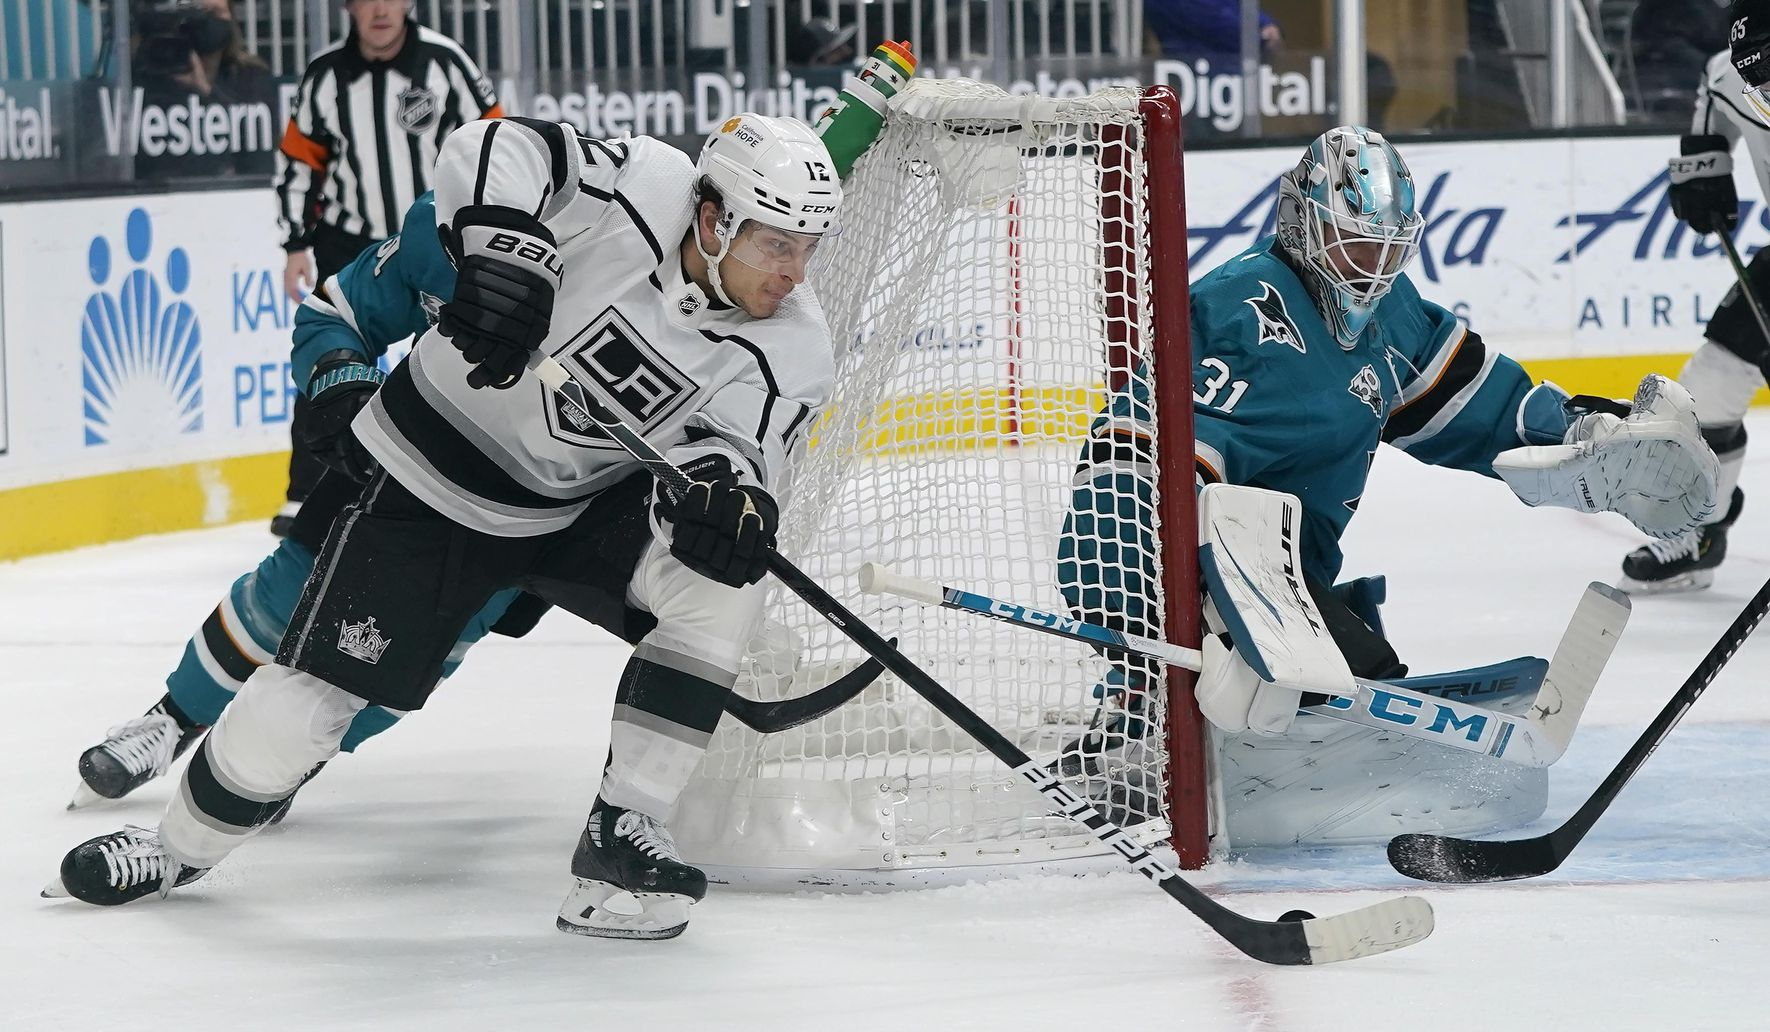 Jones helps Sharks sweep series vs Kings with 4-2 win